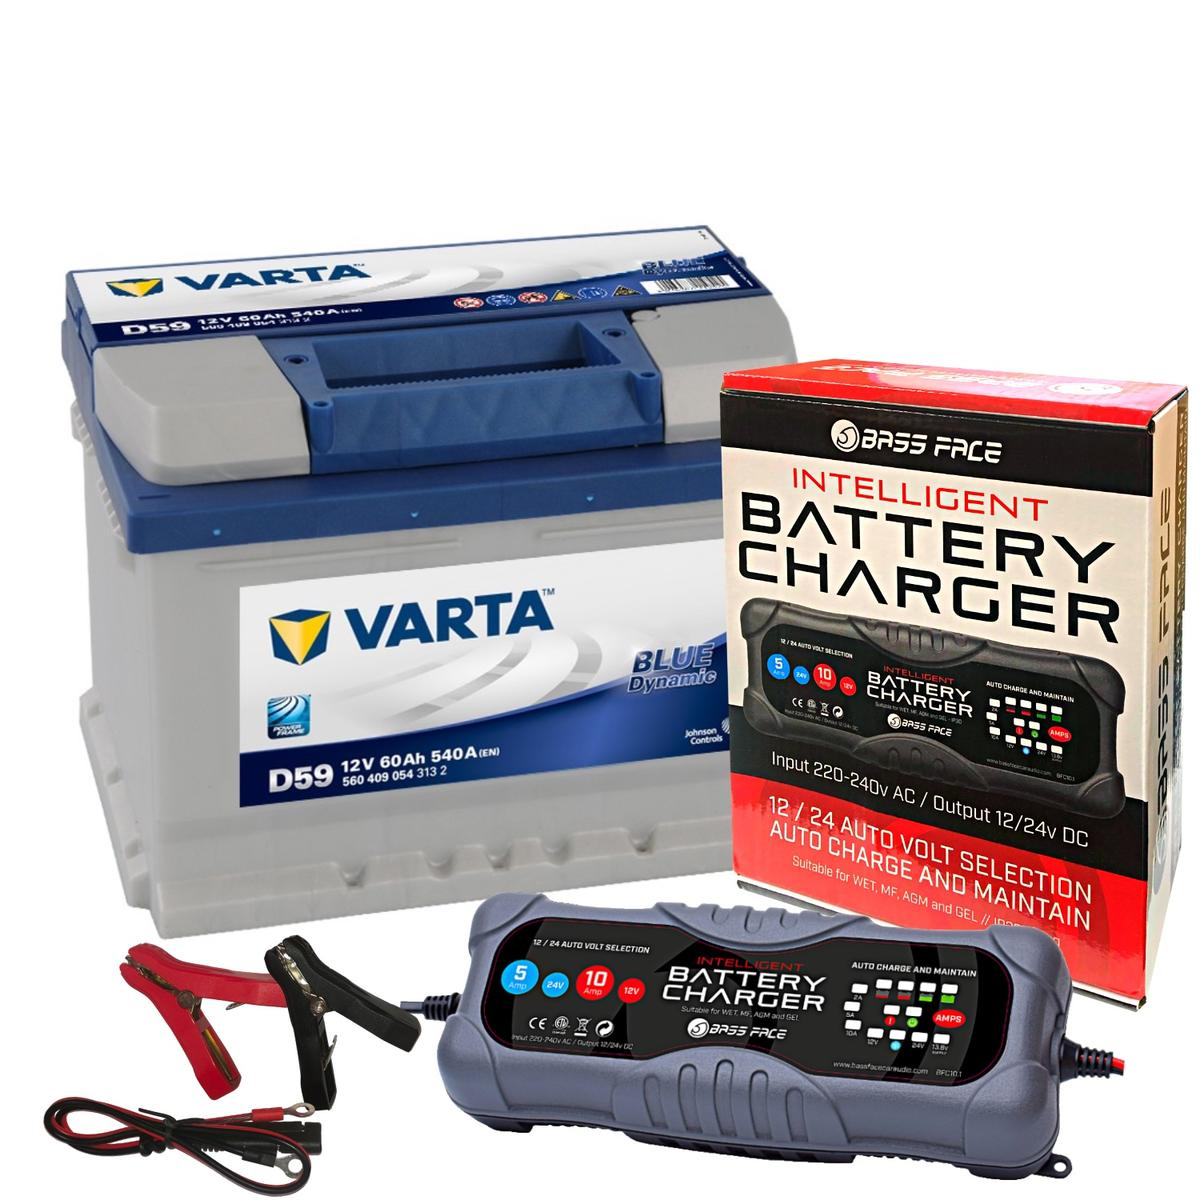 Varta D59 Ford Volvo Car Battery 12v 4 Year 075 60Ah 540CCA W/ 10 Amp Charger